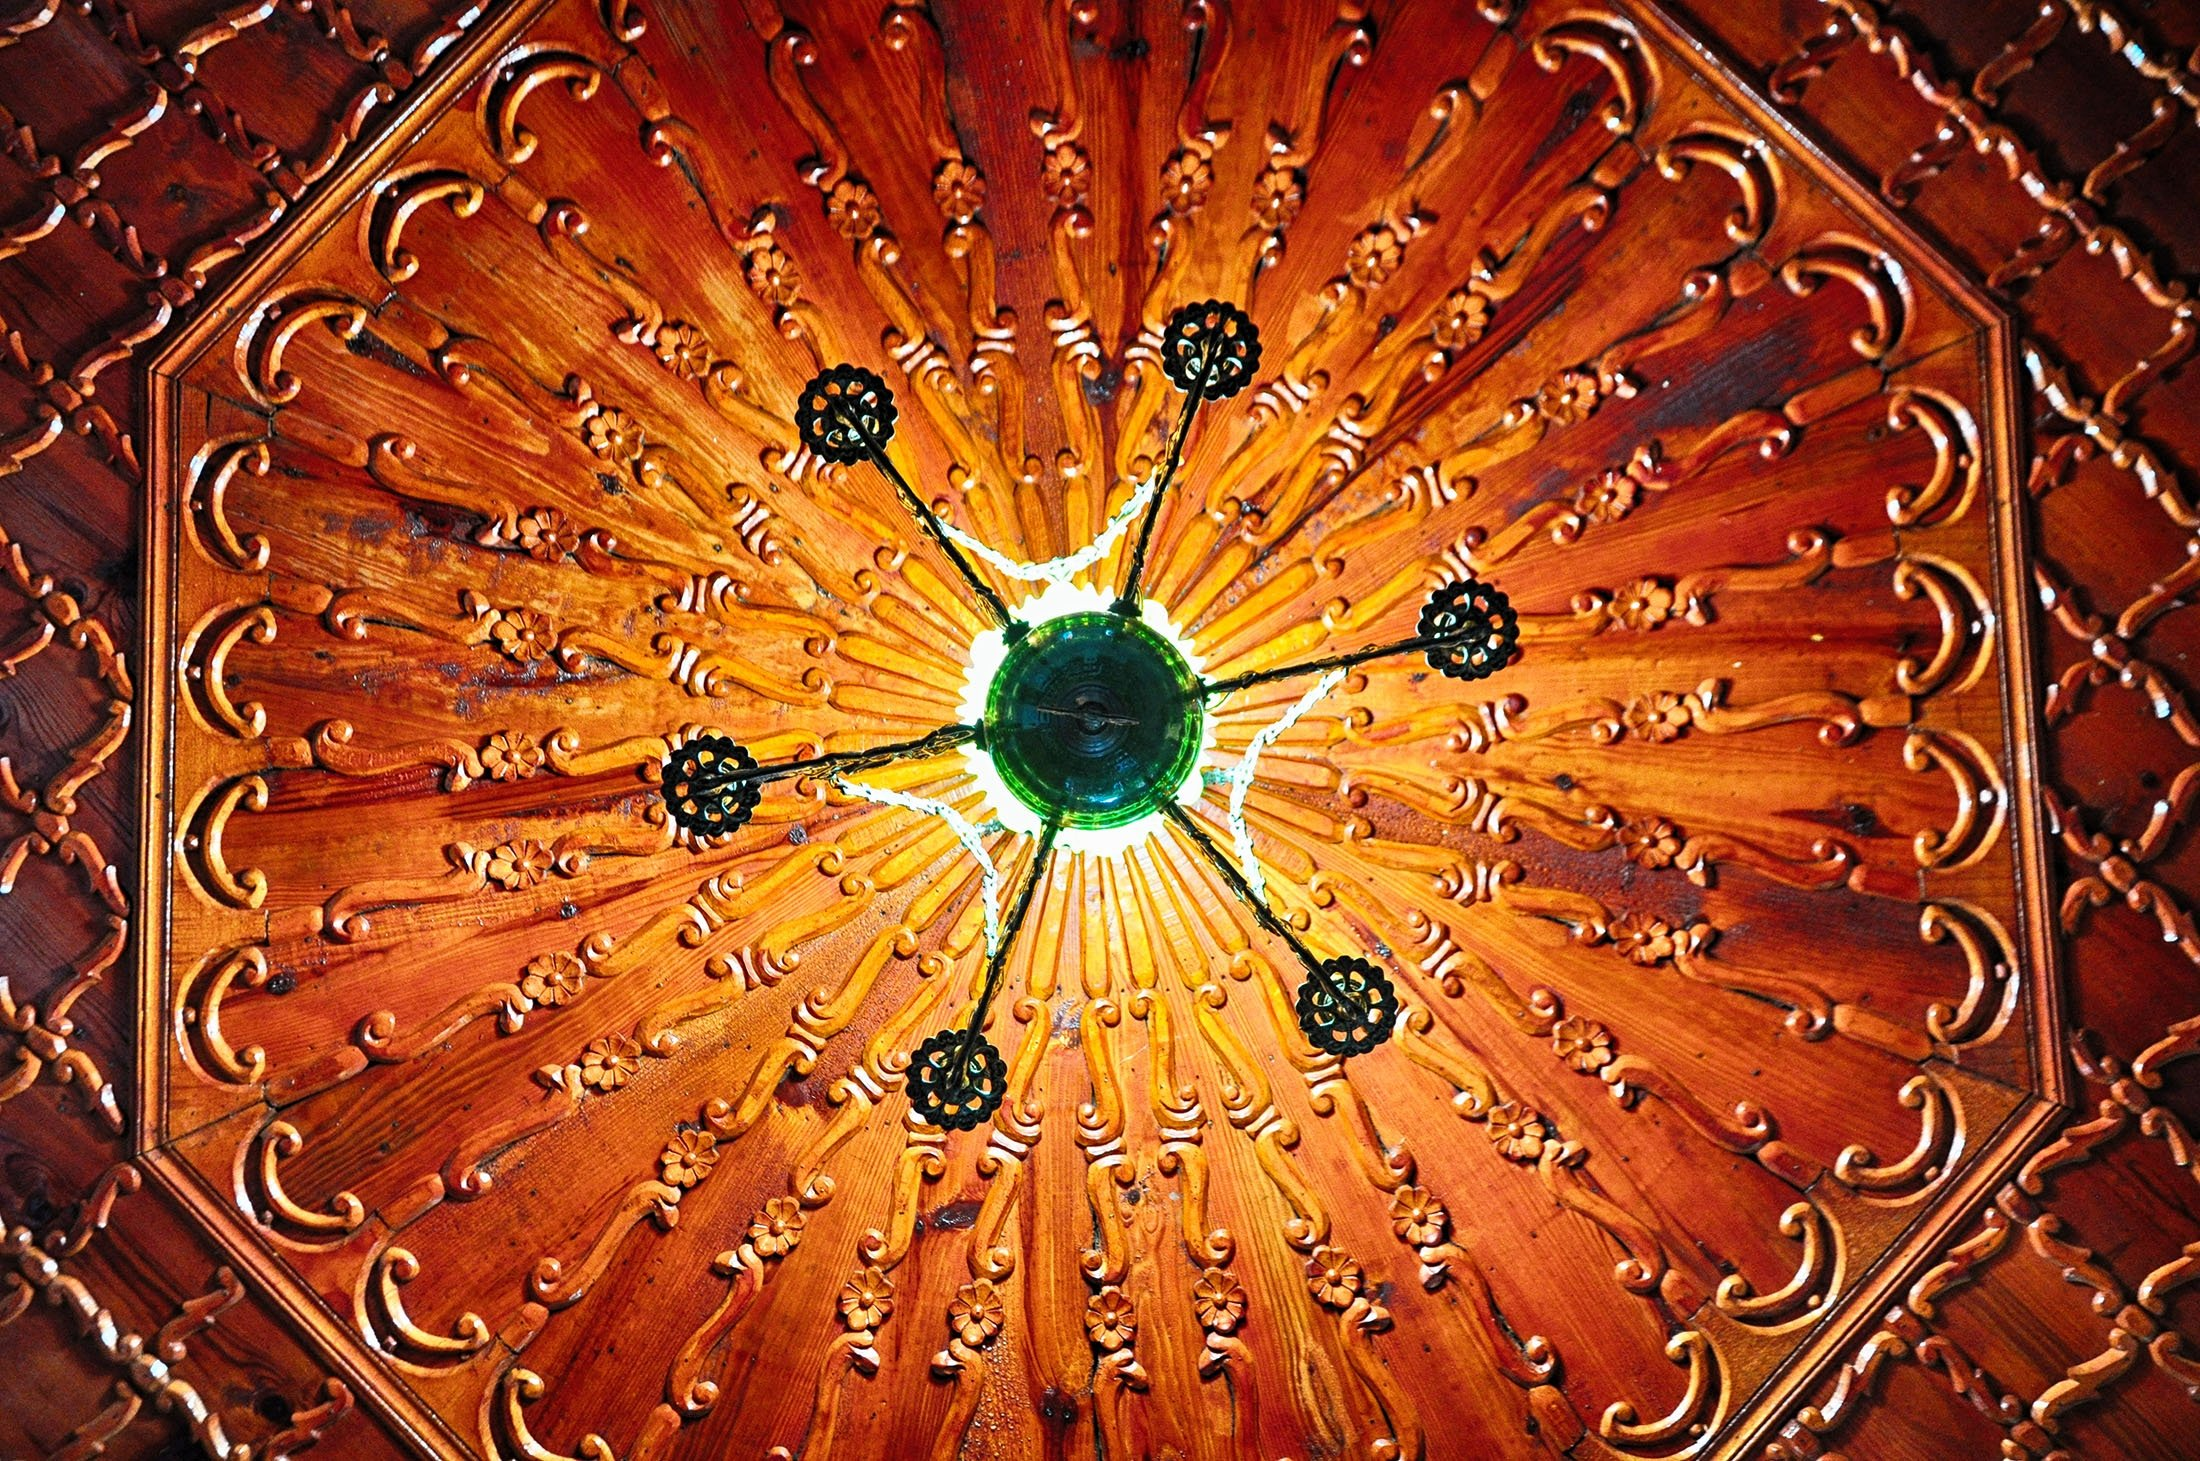 A carved, decorated wooden ceiling and chandelier at an old Ottoman house in Kula, Manisa. (Shutterstock Photo)